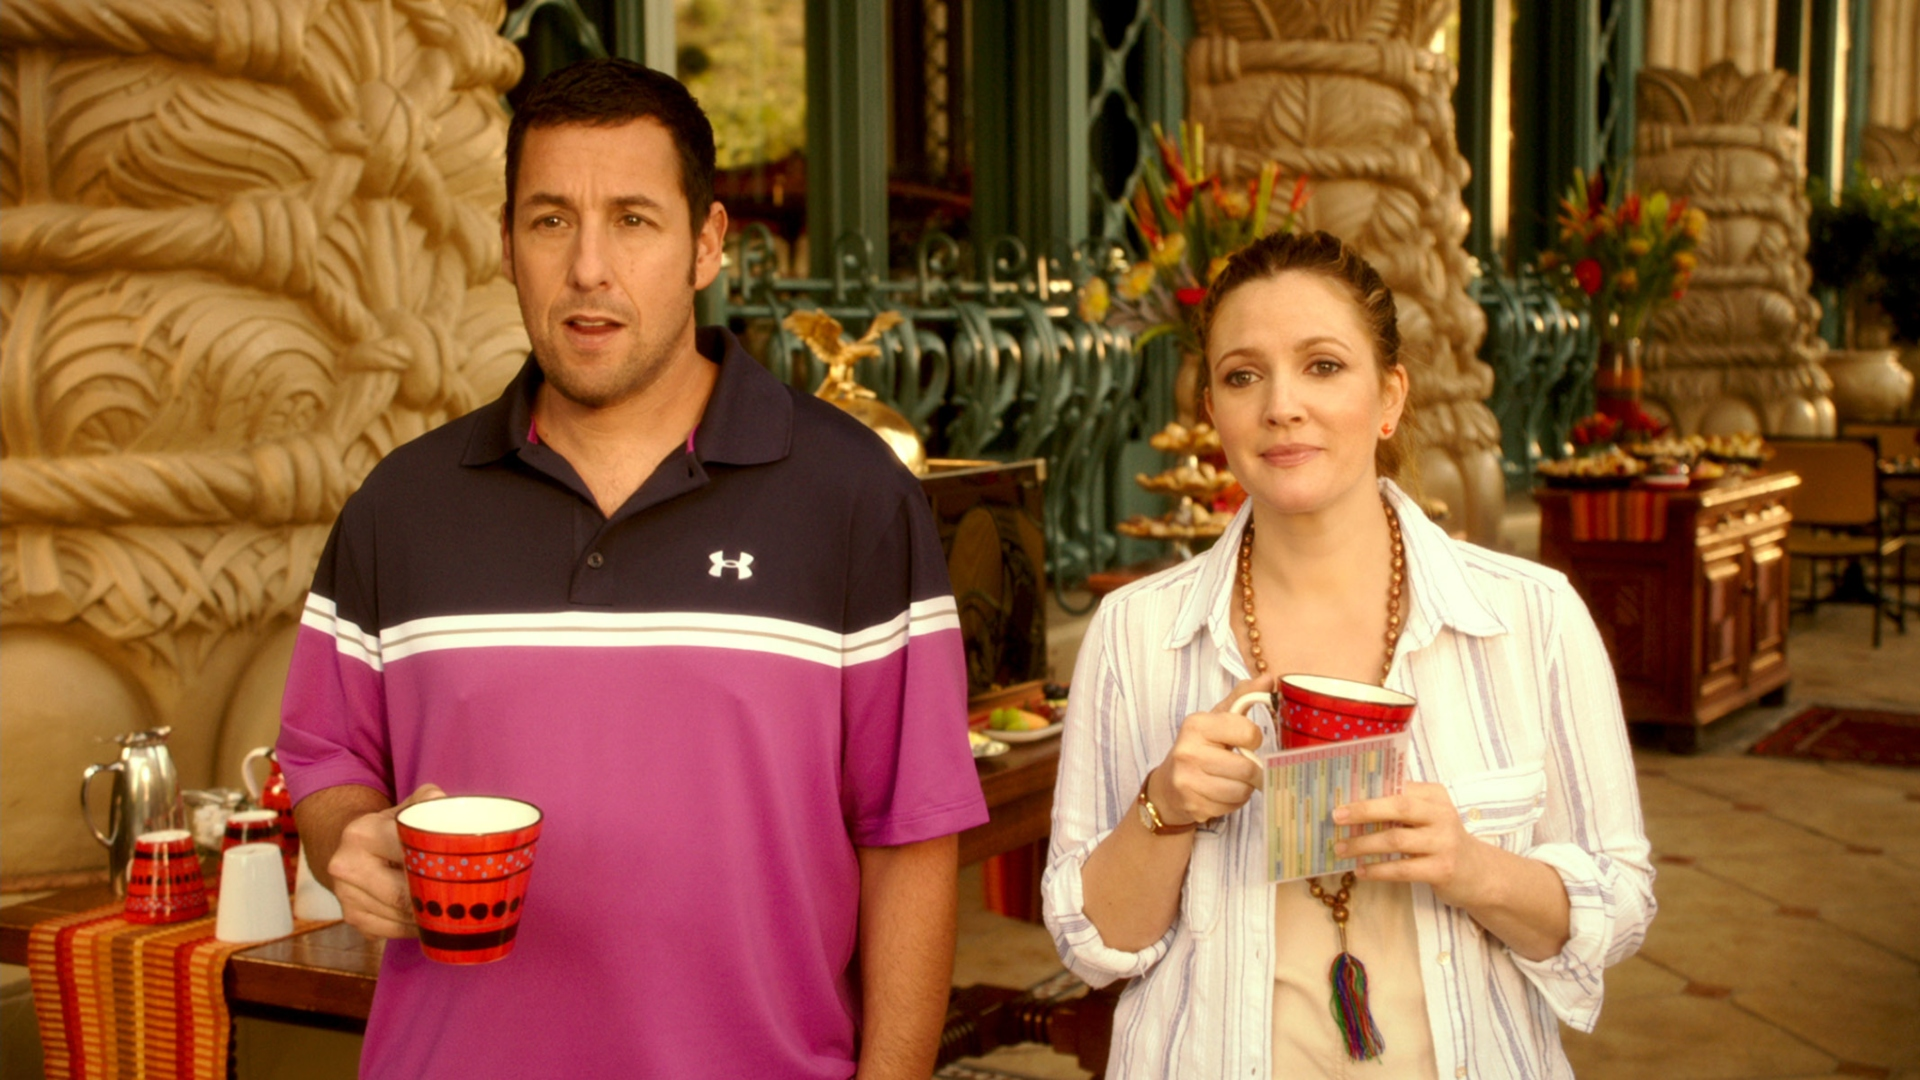 Drew Barrymore Wants to Film Another Movie with Adam Sandler